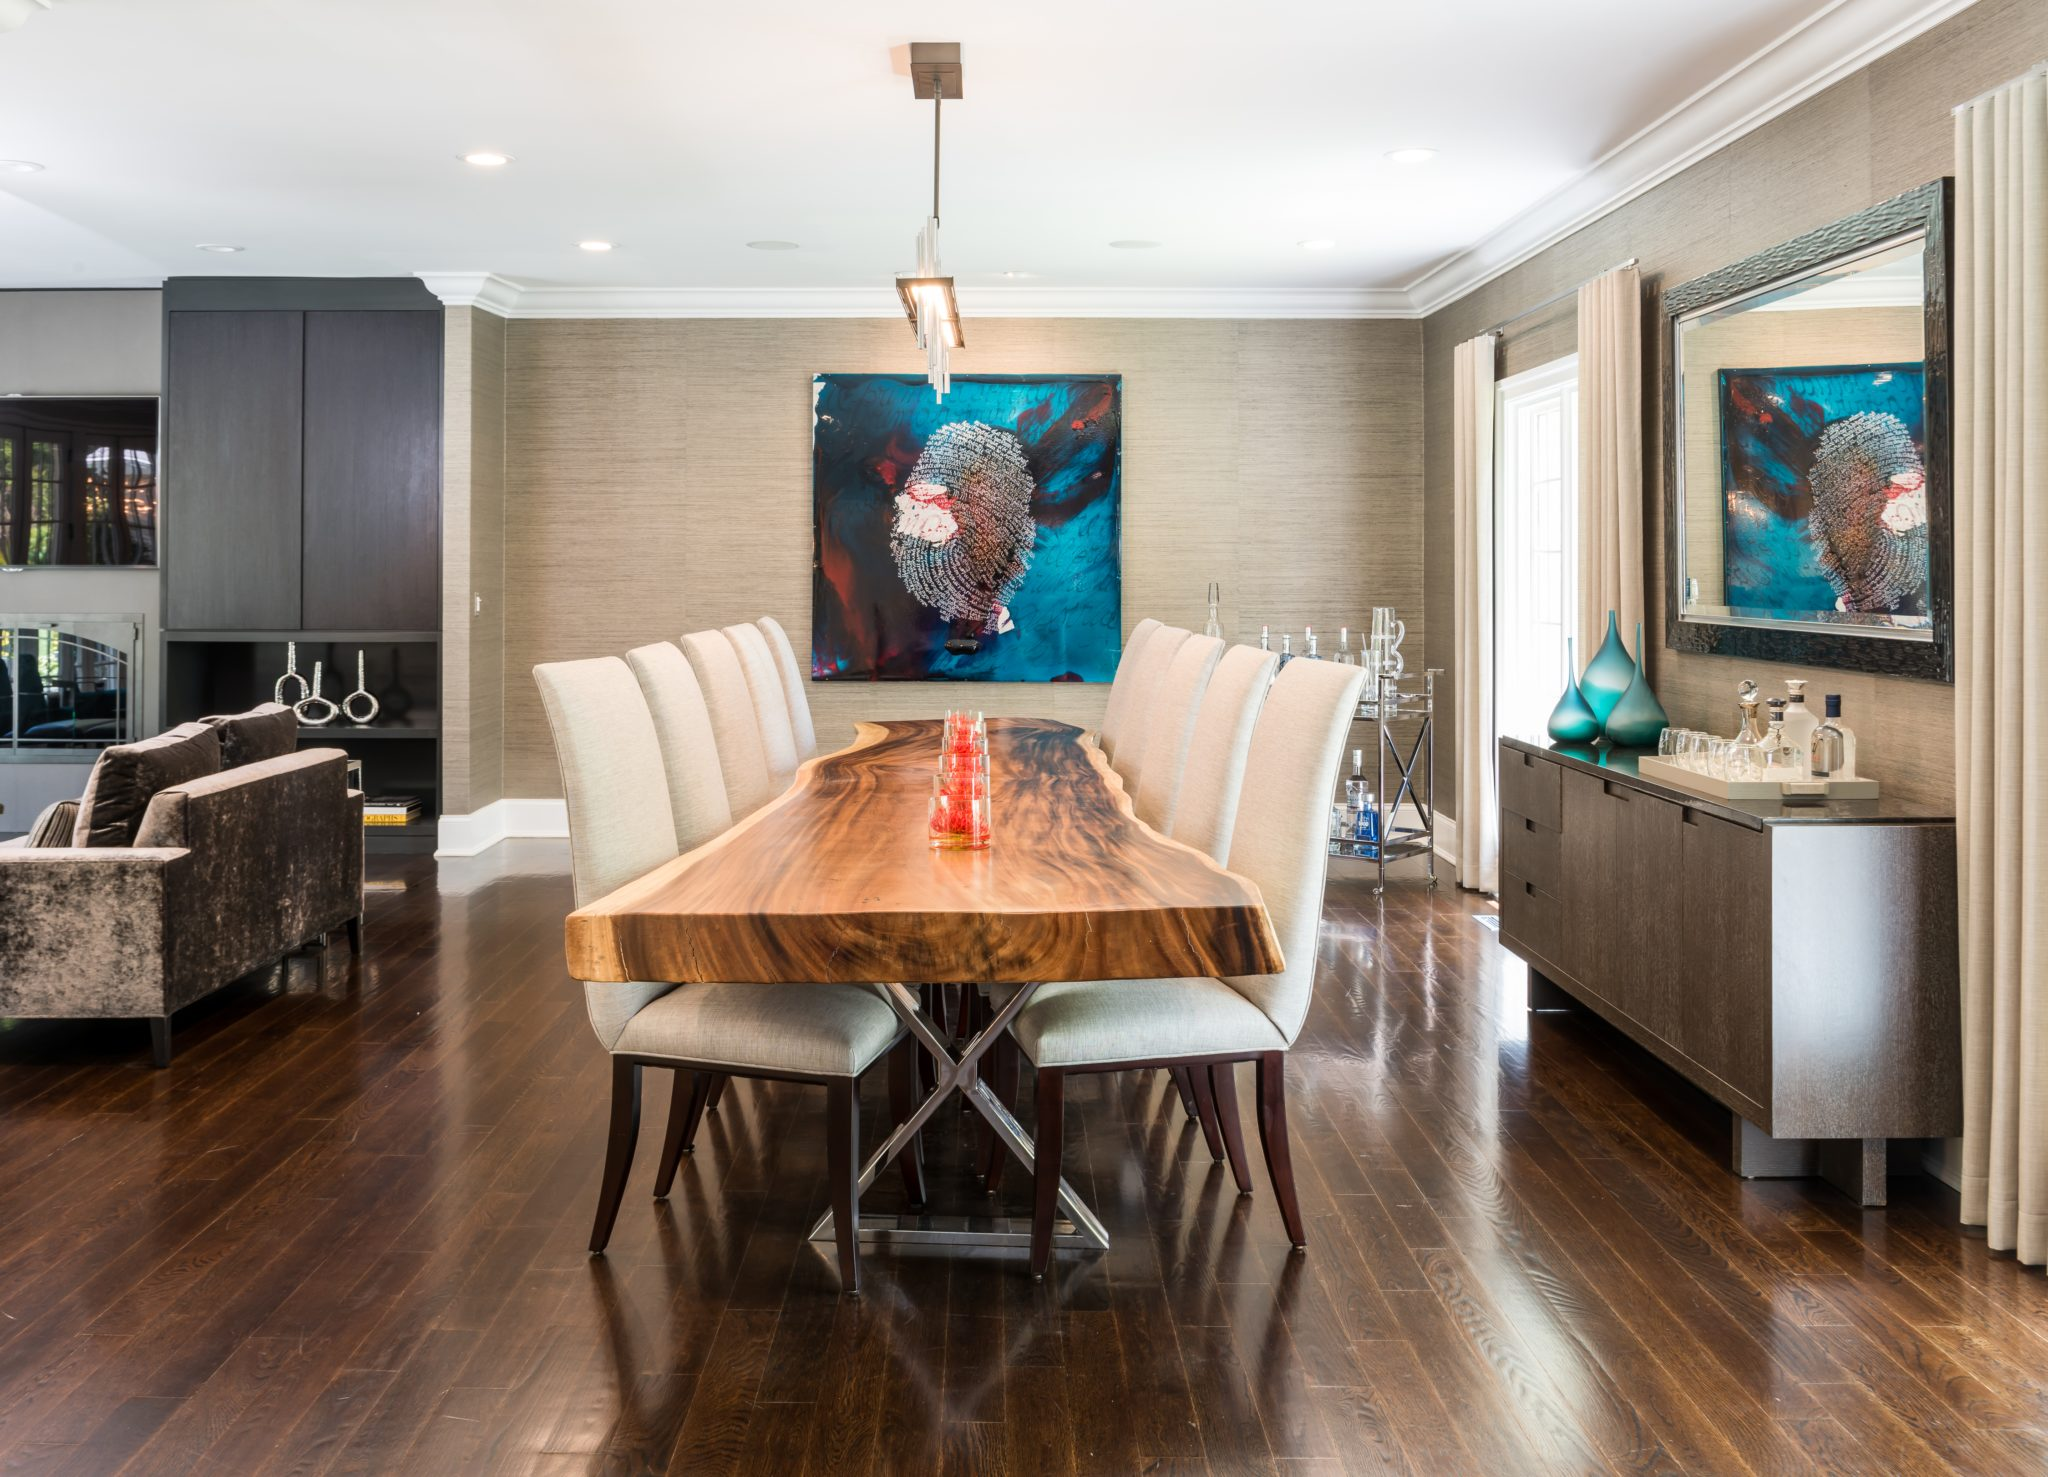 Organic edged dining table in open concept sprawling ranch. By Kim Radovich Interiors